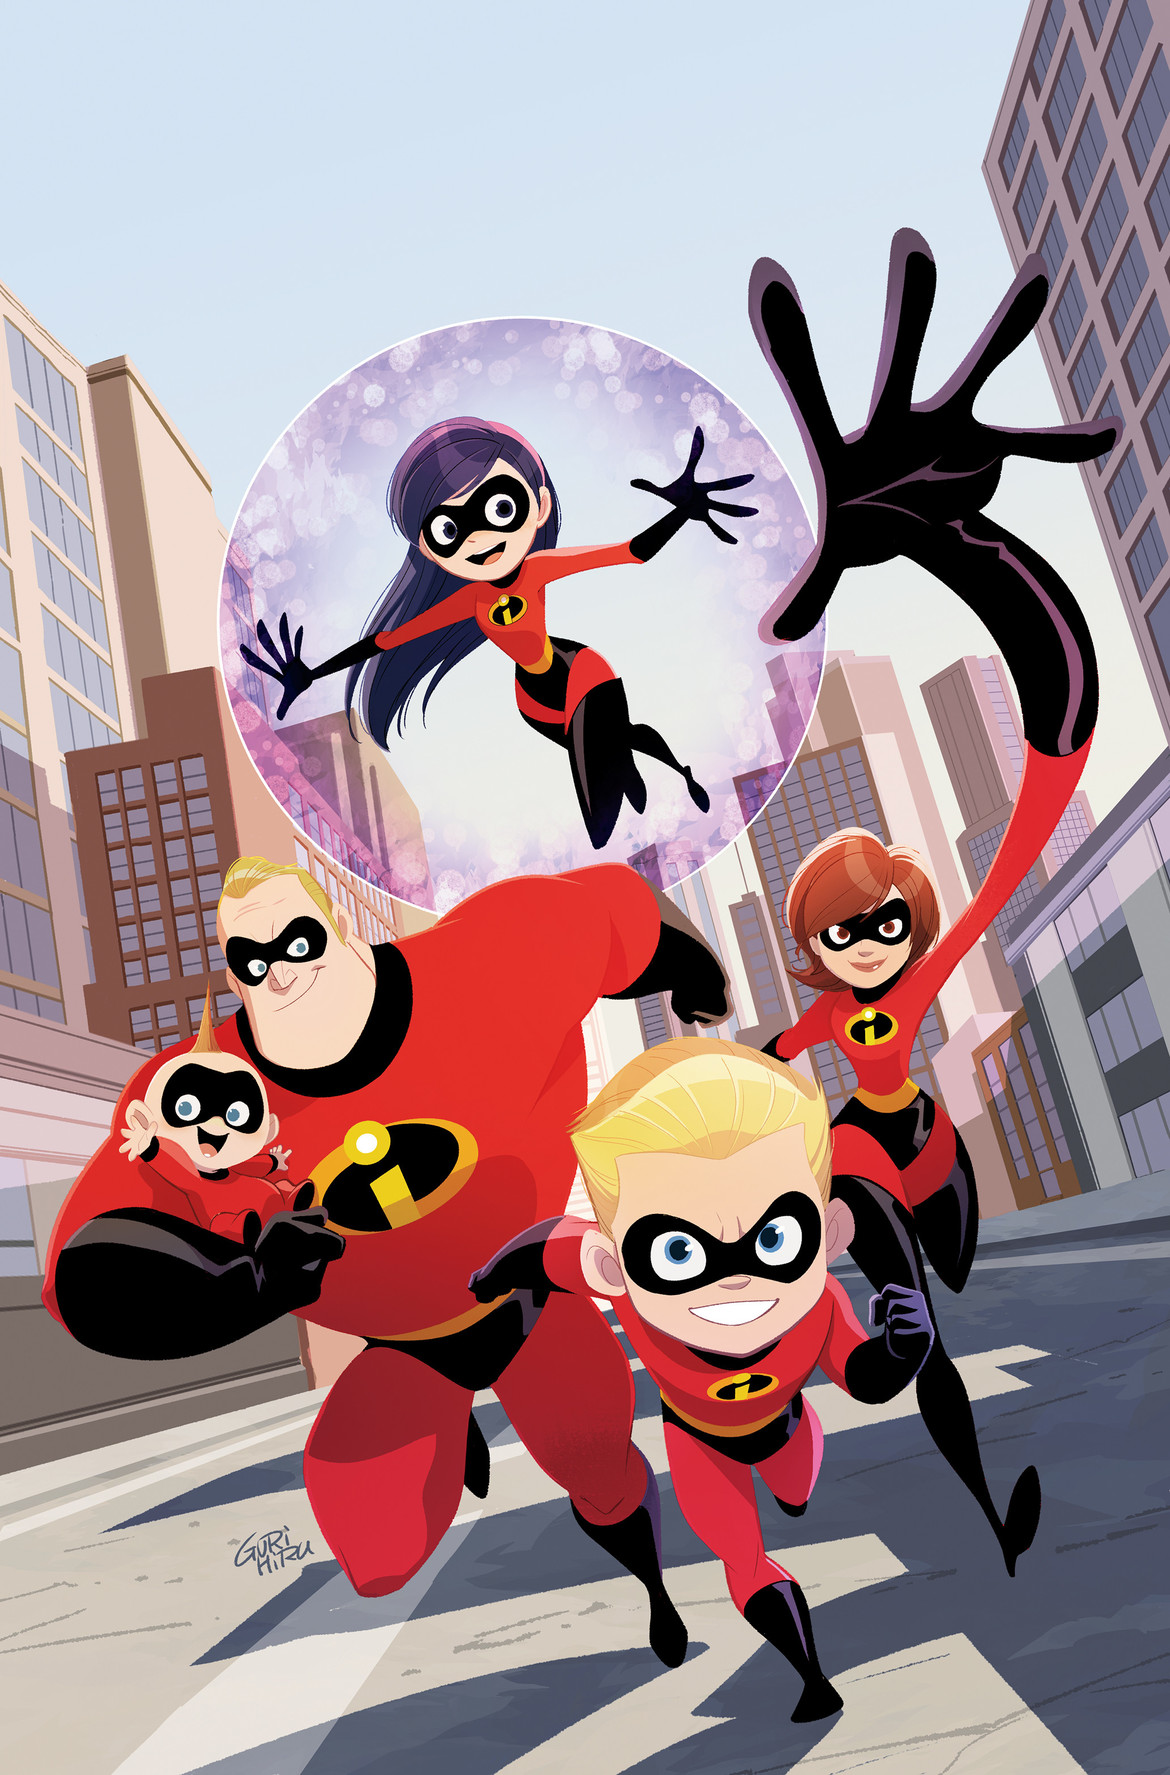 incredibles_2_crisis_in_mid-life_1_cover.jpg